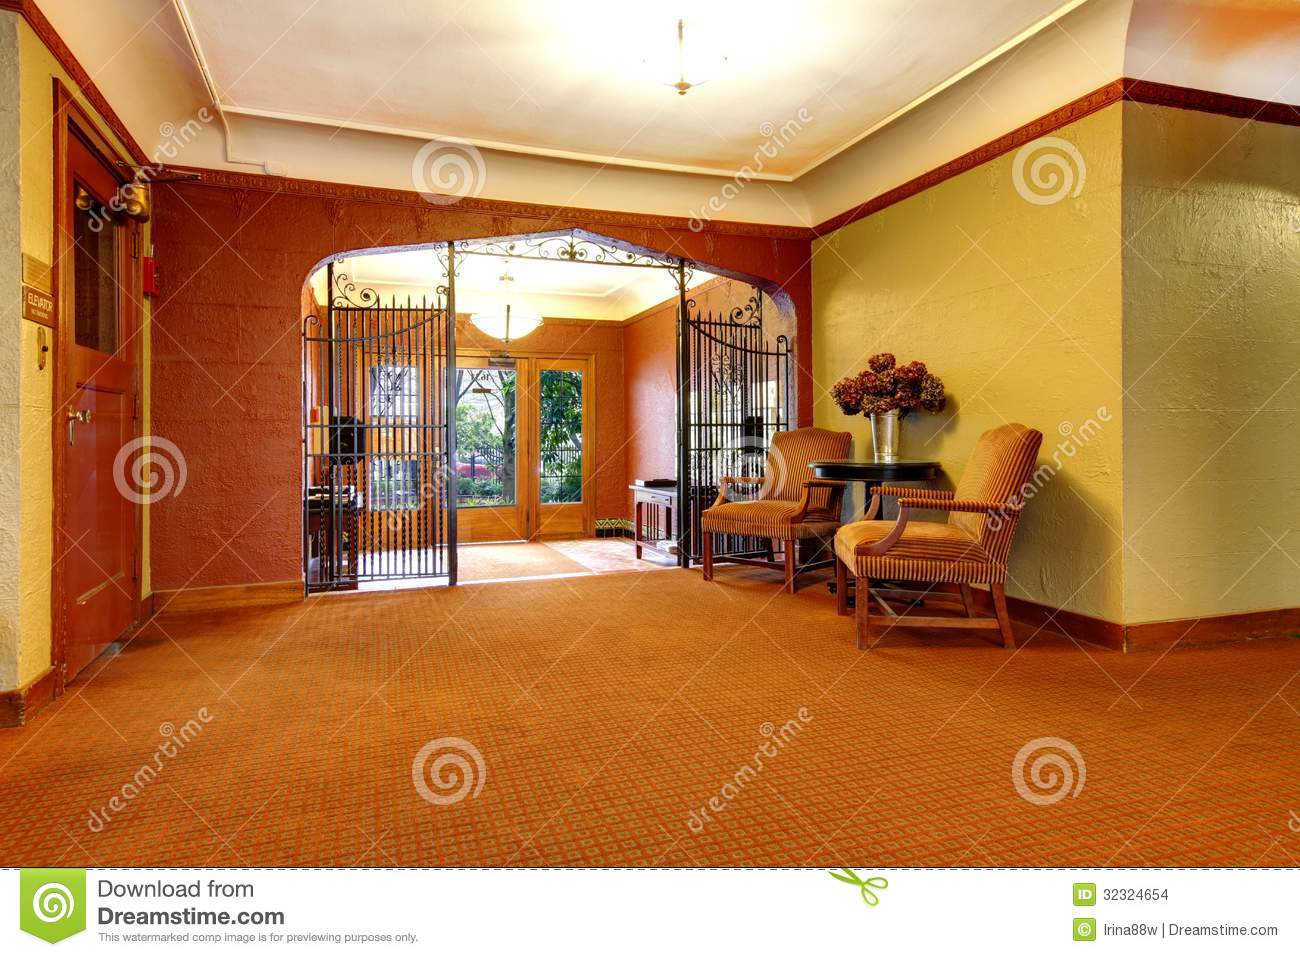 Apartment Building Foyer : Old apartment building main foyer front door entrance